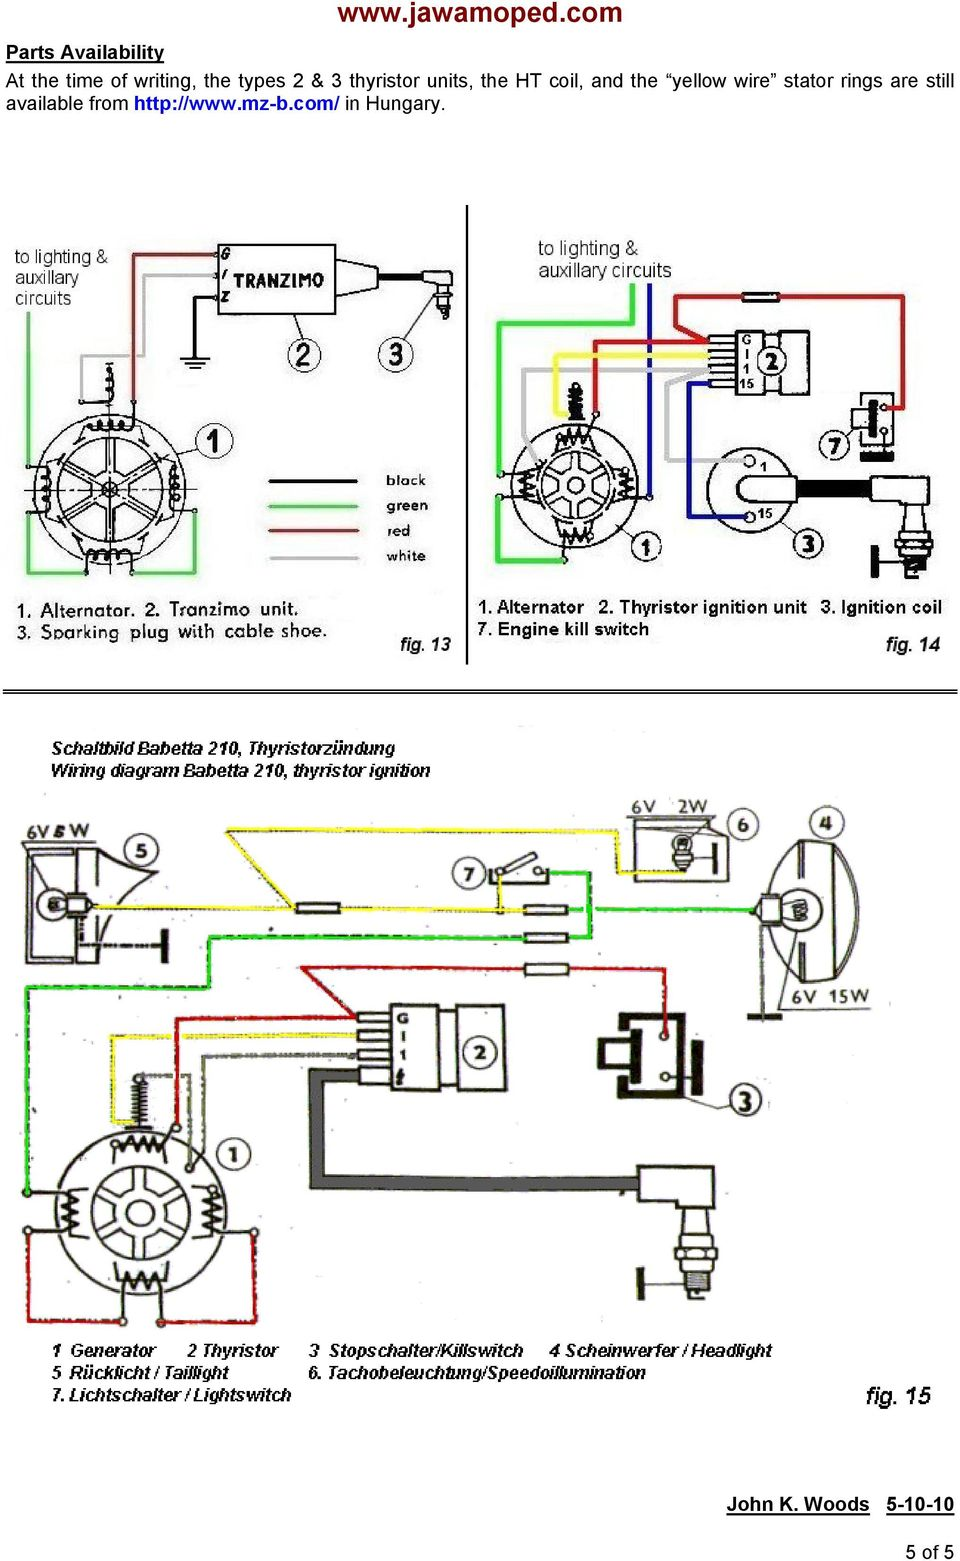 Jawa Moped Wiring Diagram Sachs Puch 1978 Maxi Pdf On